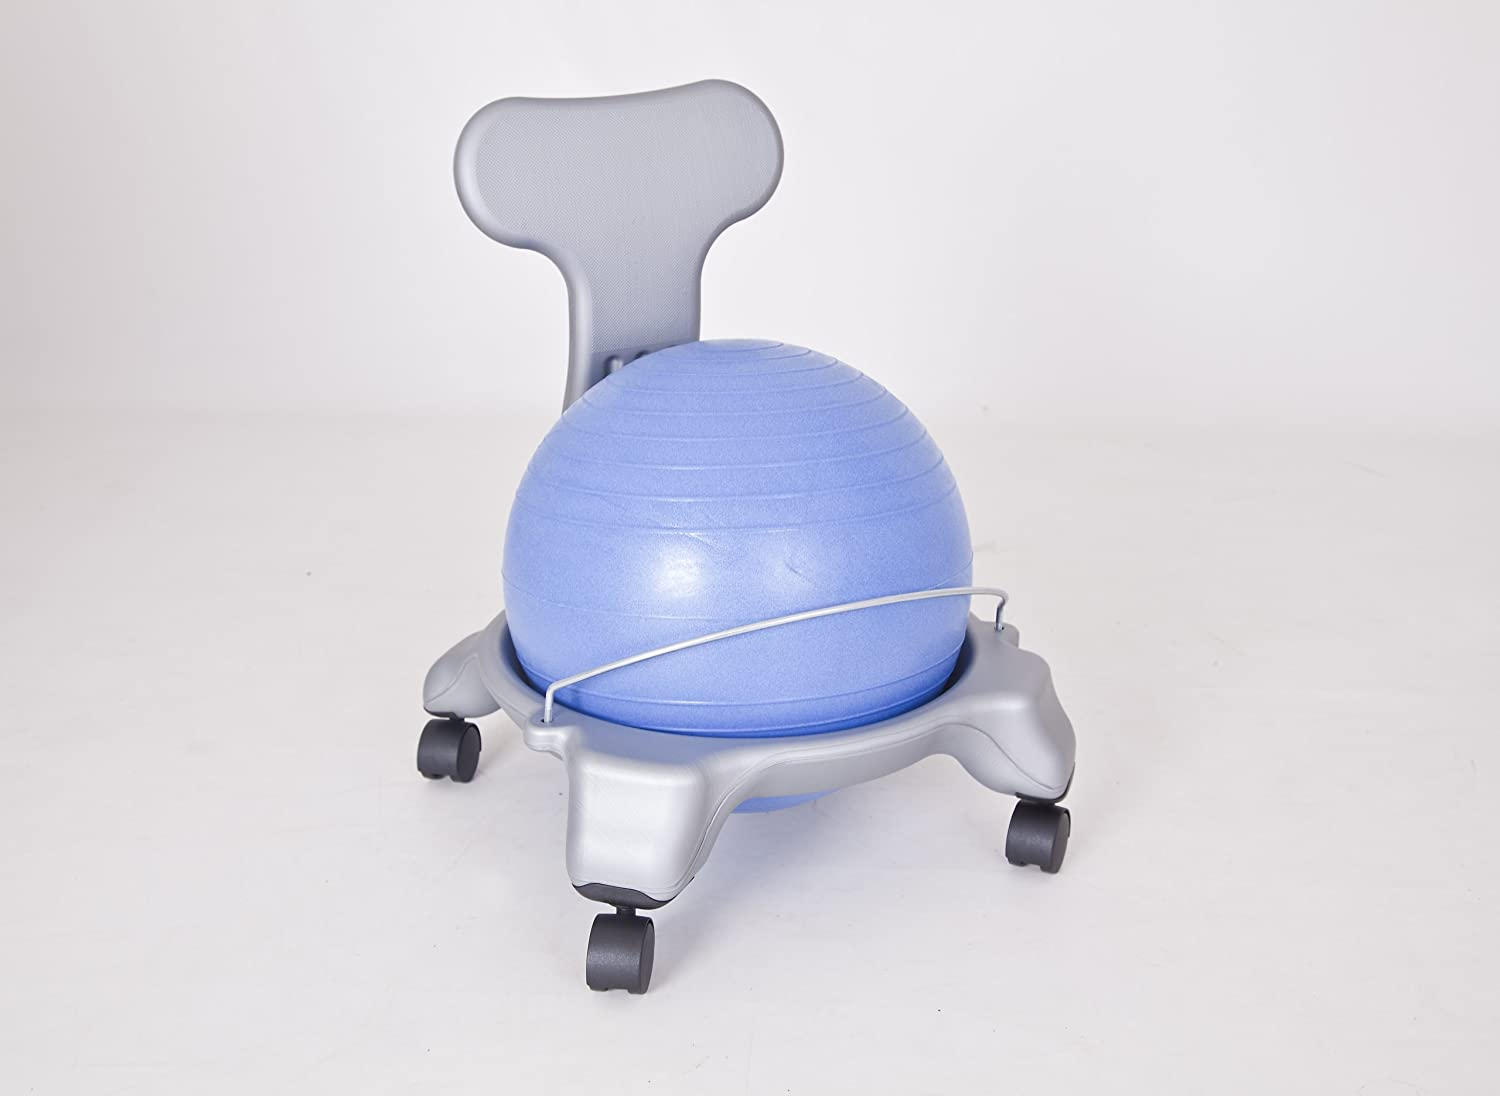 100 ball chair office chair castors picture more detailed p